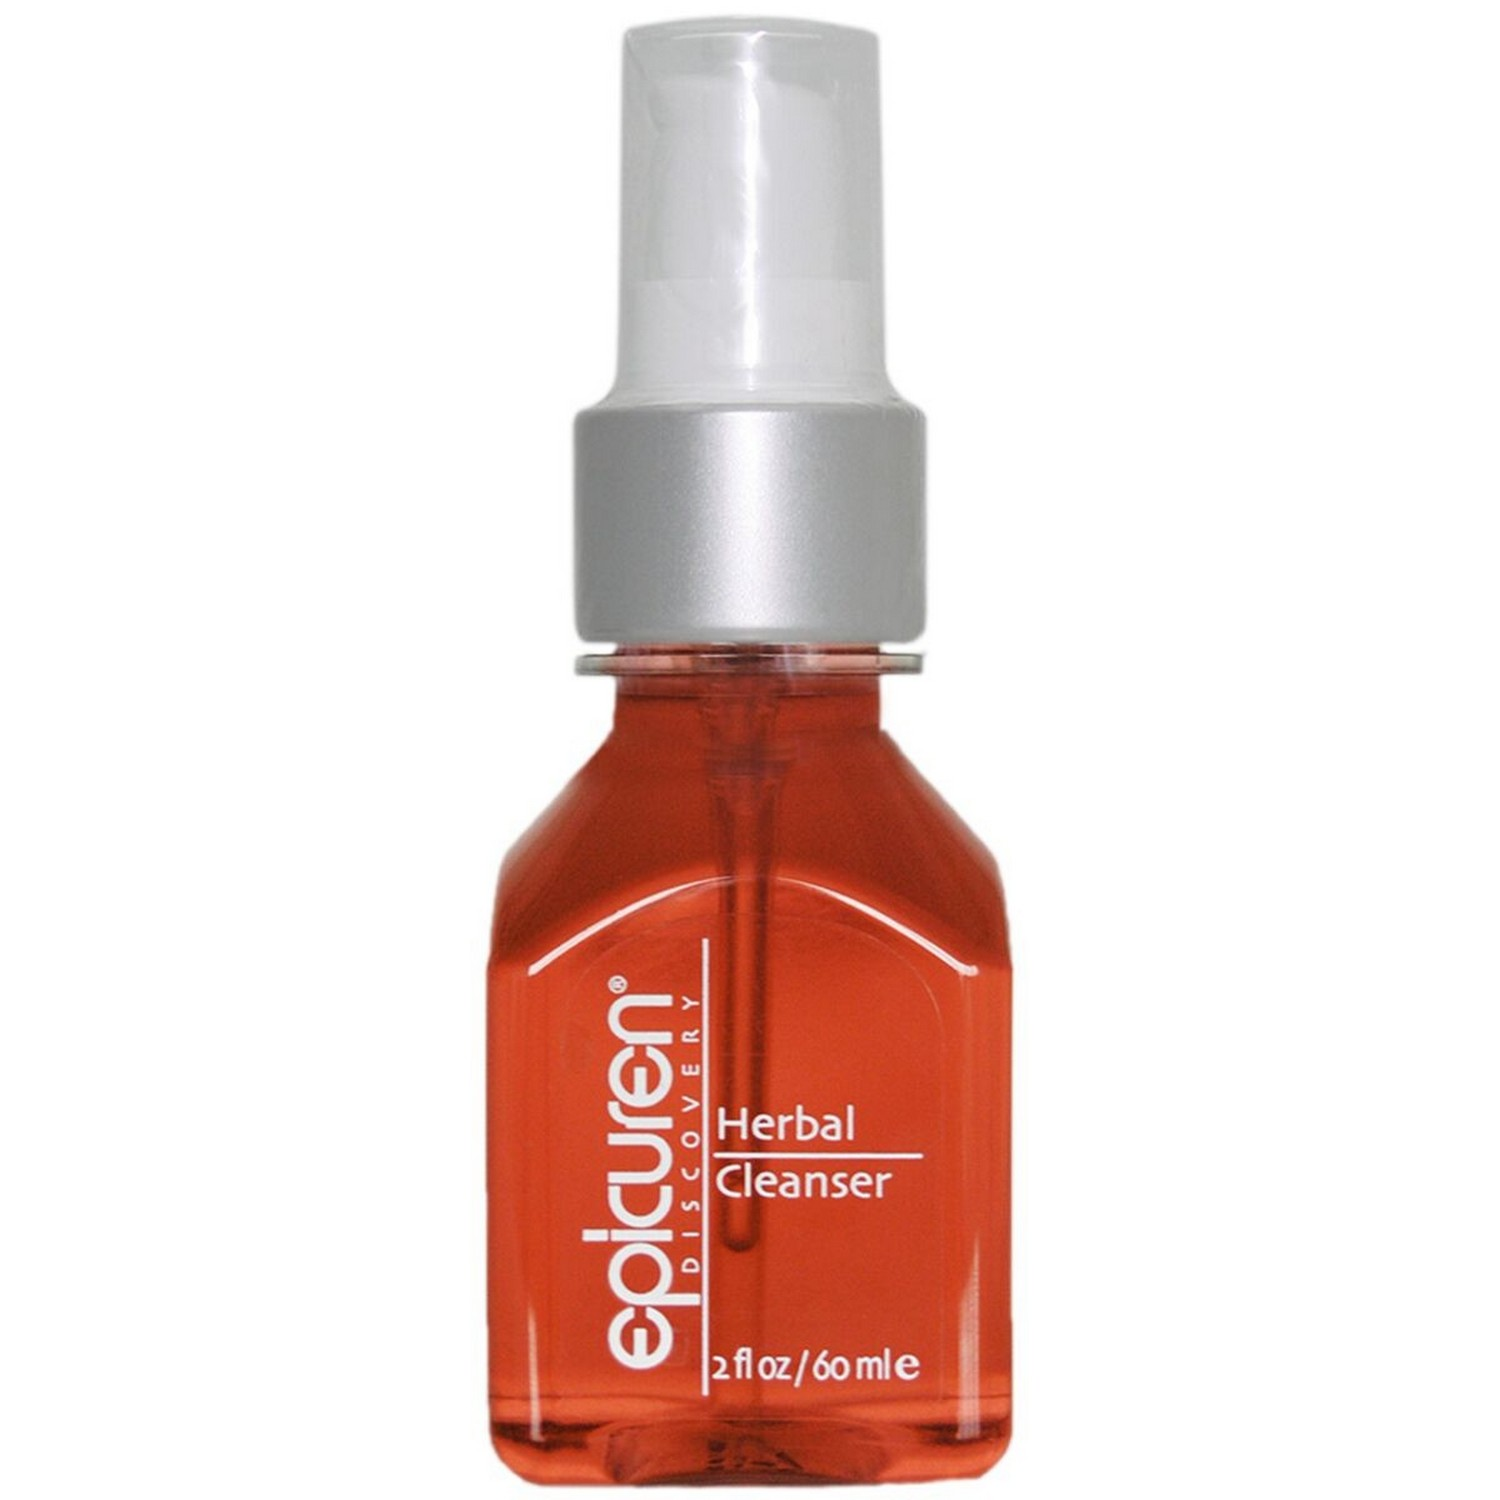 epicuren Discovery Herbal Cleanser (2.0 fl oz / 60 ml)